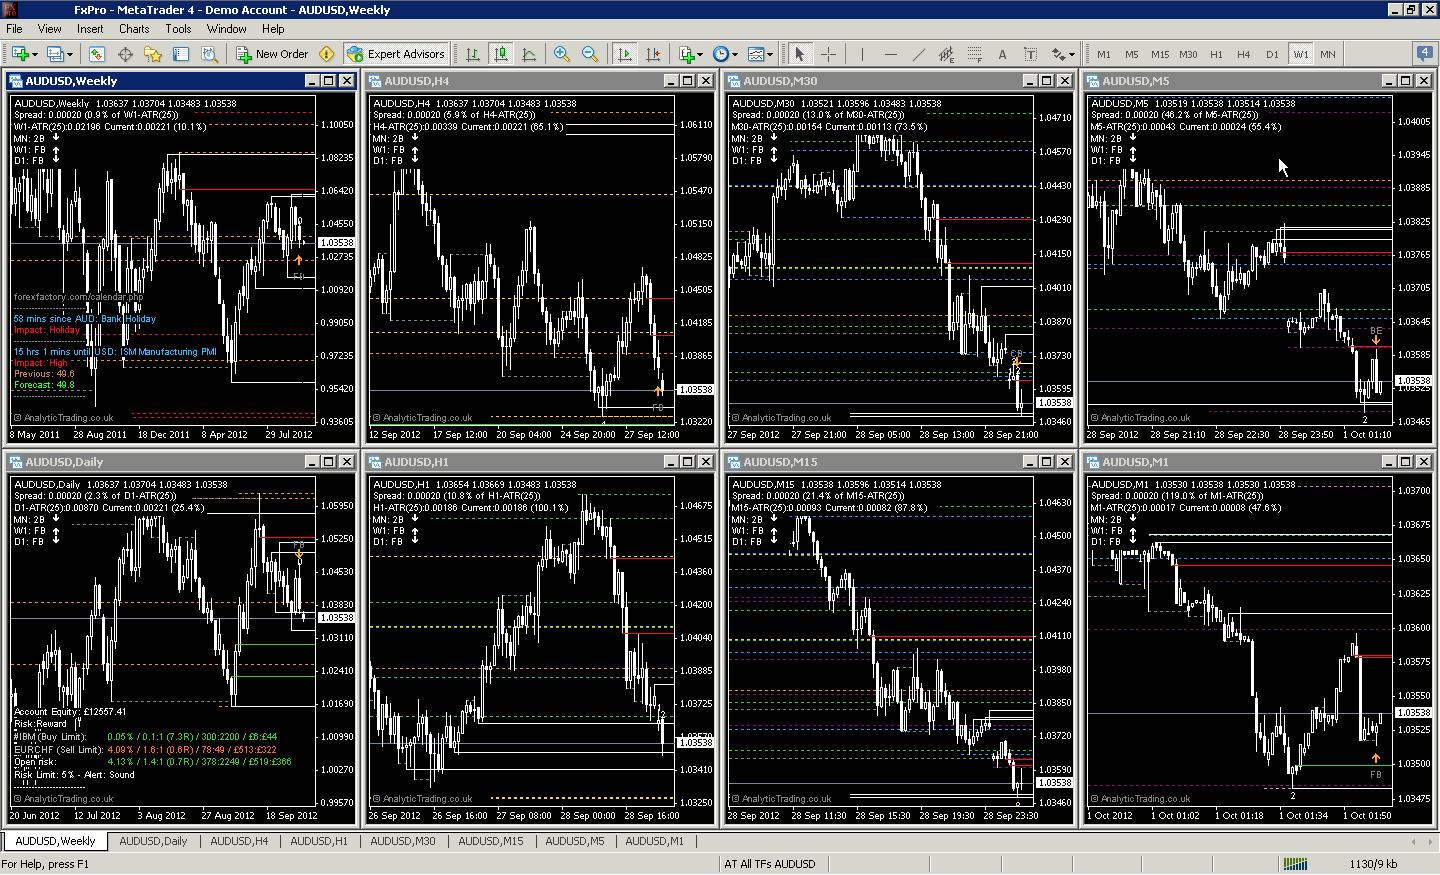 MetaTrader Profile for All Timeframes by Analytic Trading